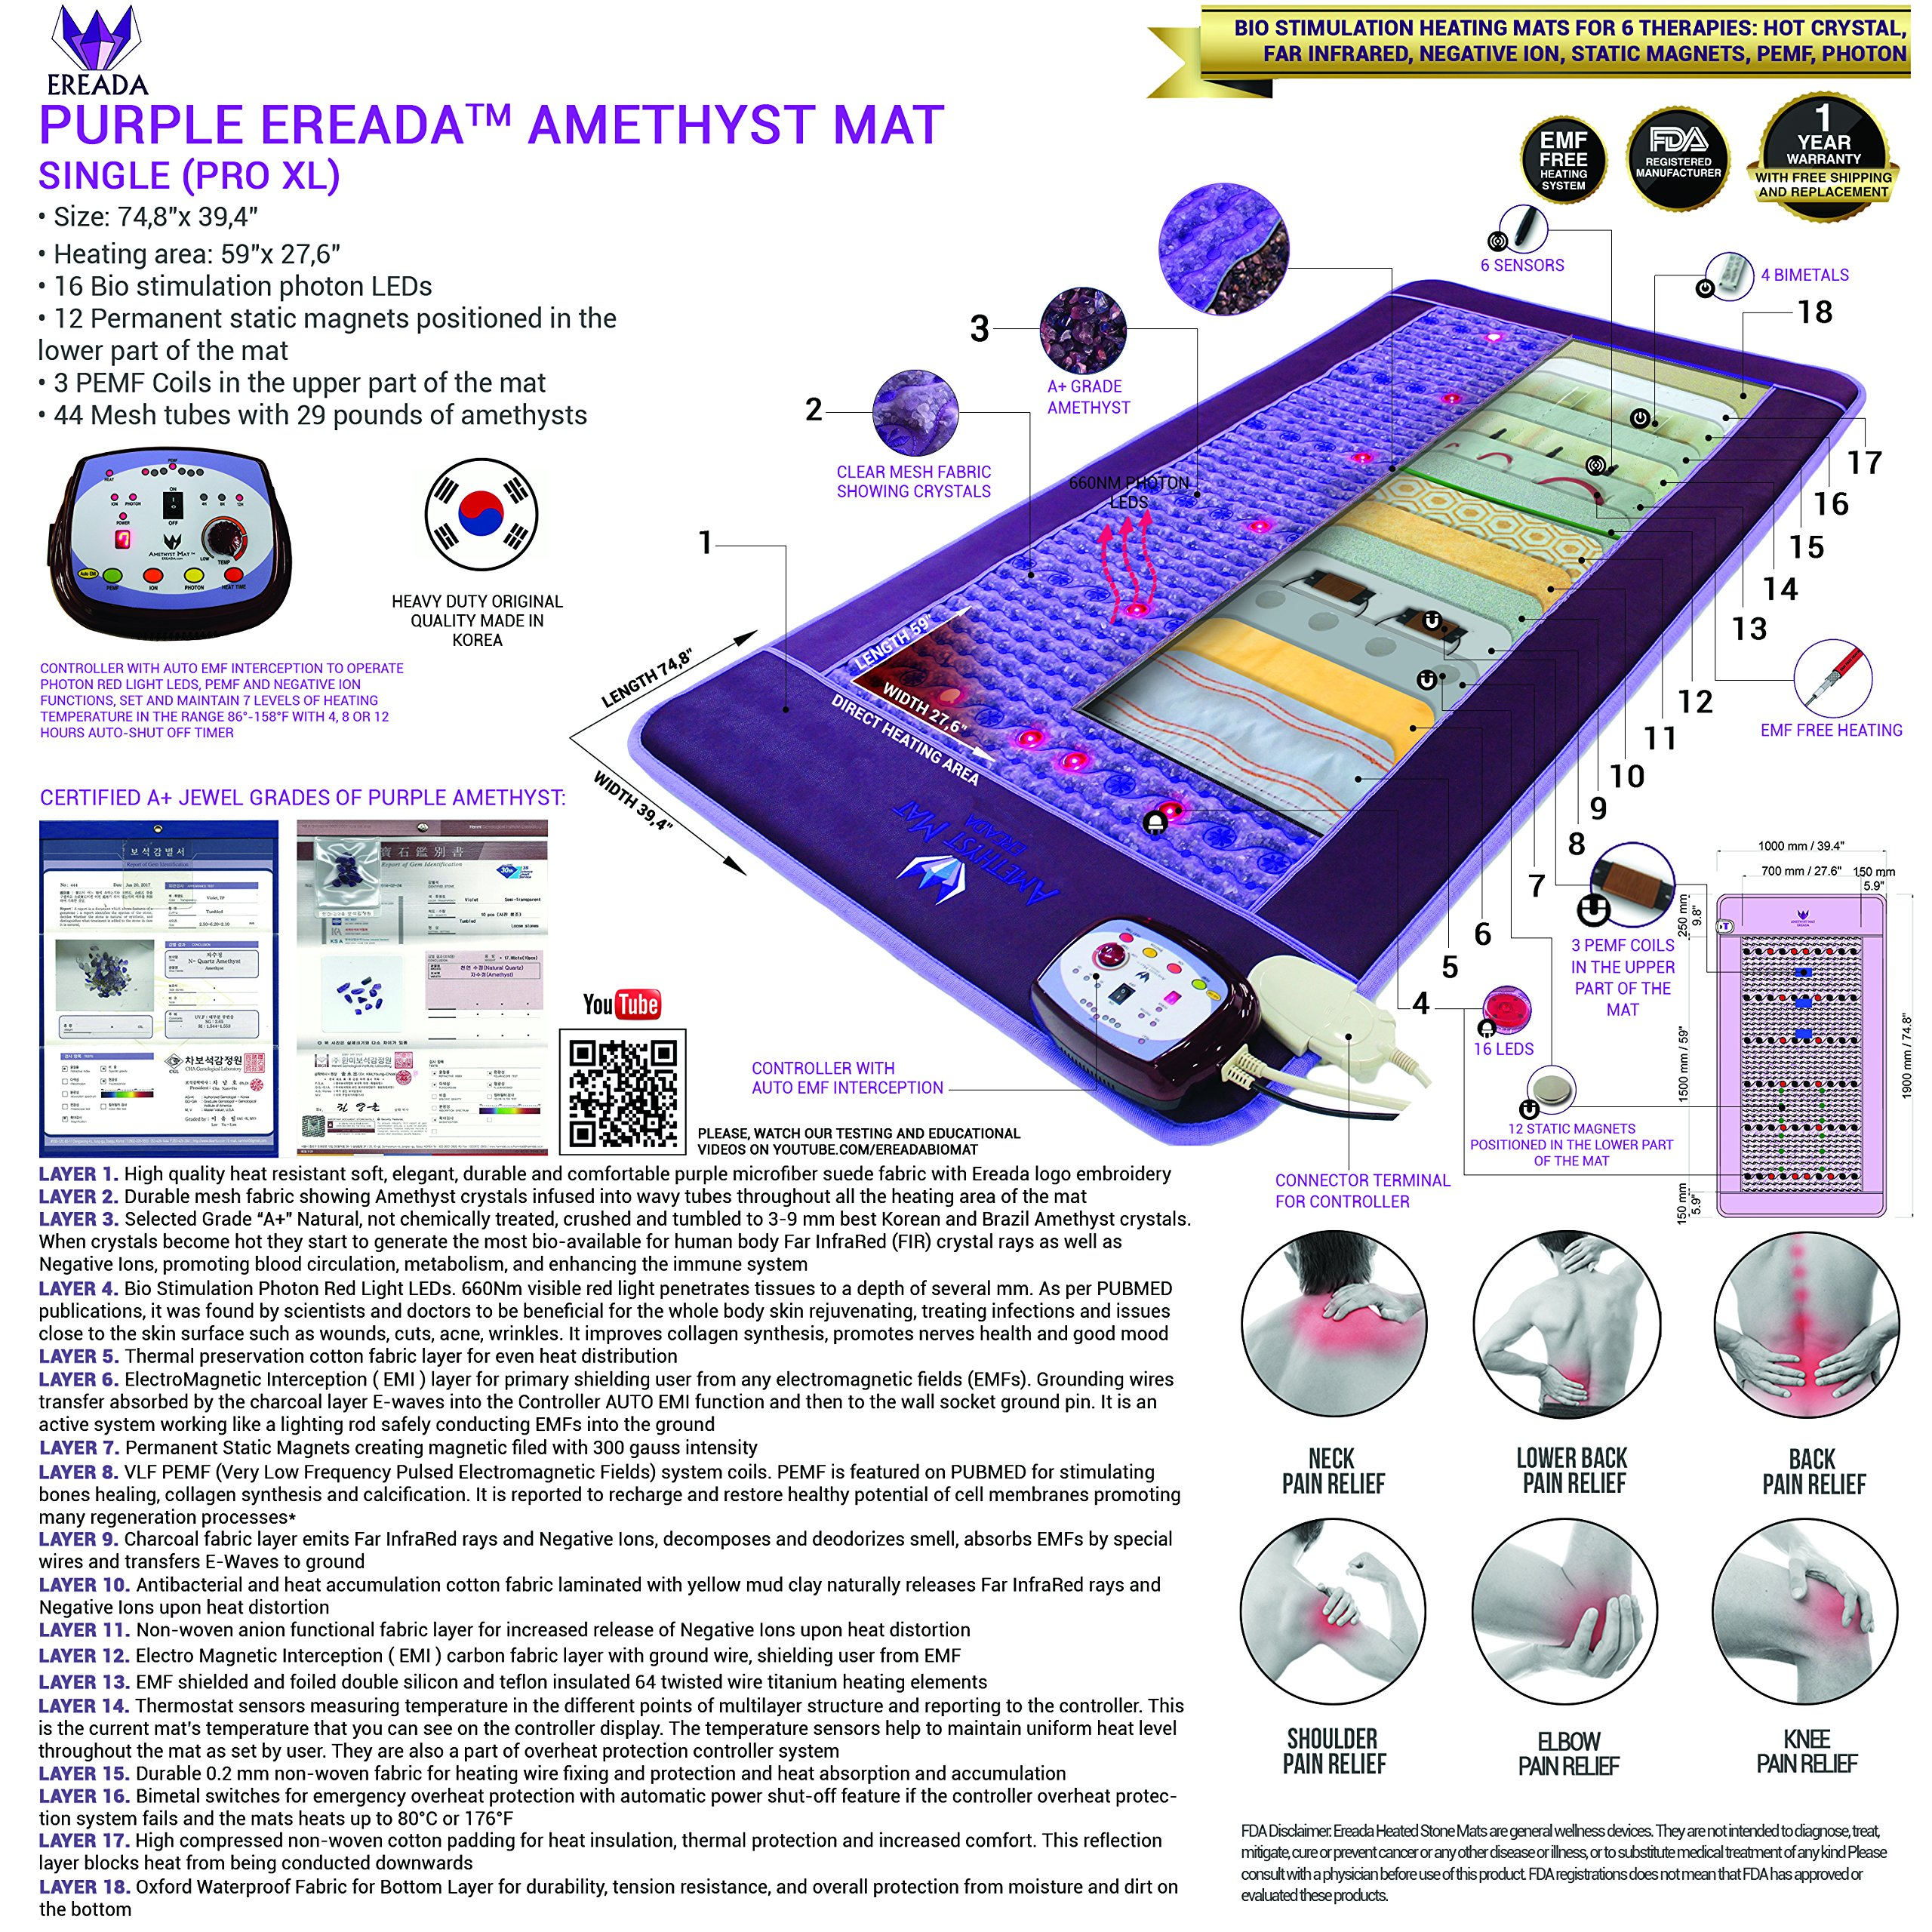 Far Infrared Amethyst Mat - FIR Heat - Bio Magnetic Field - PEMF - Negative Ions - Red Light Photon Therapy - Natural Amethyst - FDA Registered Korean Manufacturer - Purple (Single (XL) 75''L x 39''W) by Bio Amethyst (Image #2)